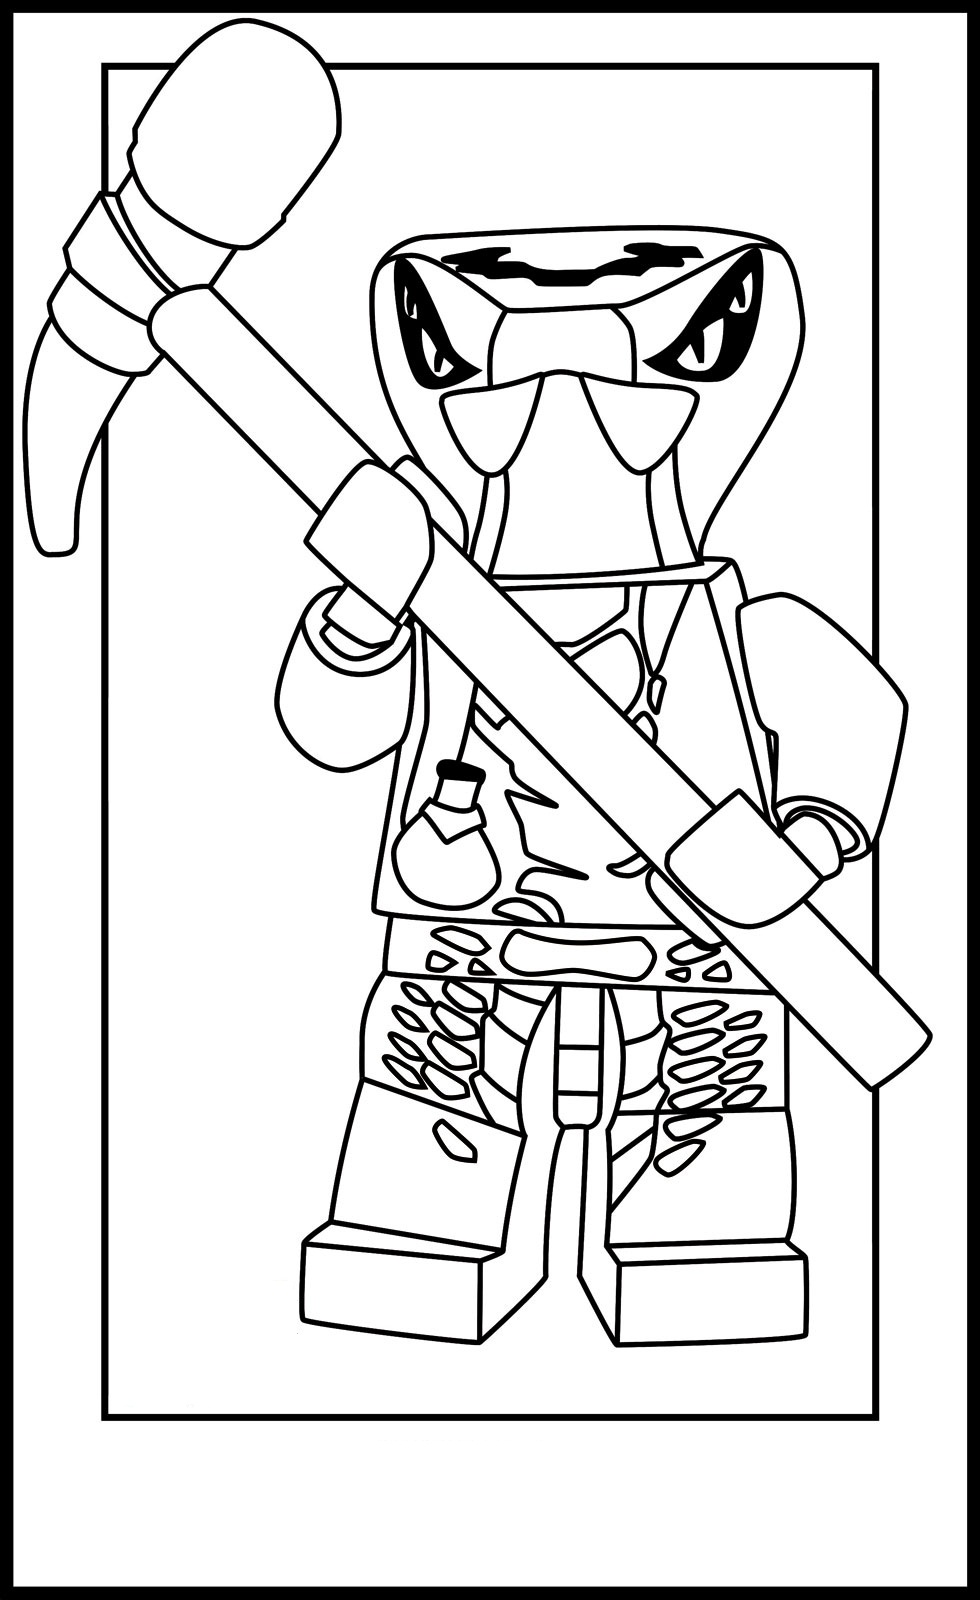 Lego Ninjago Ausmalen Coloring Pages Lego Ninjago Colouring Pages To Print